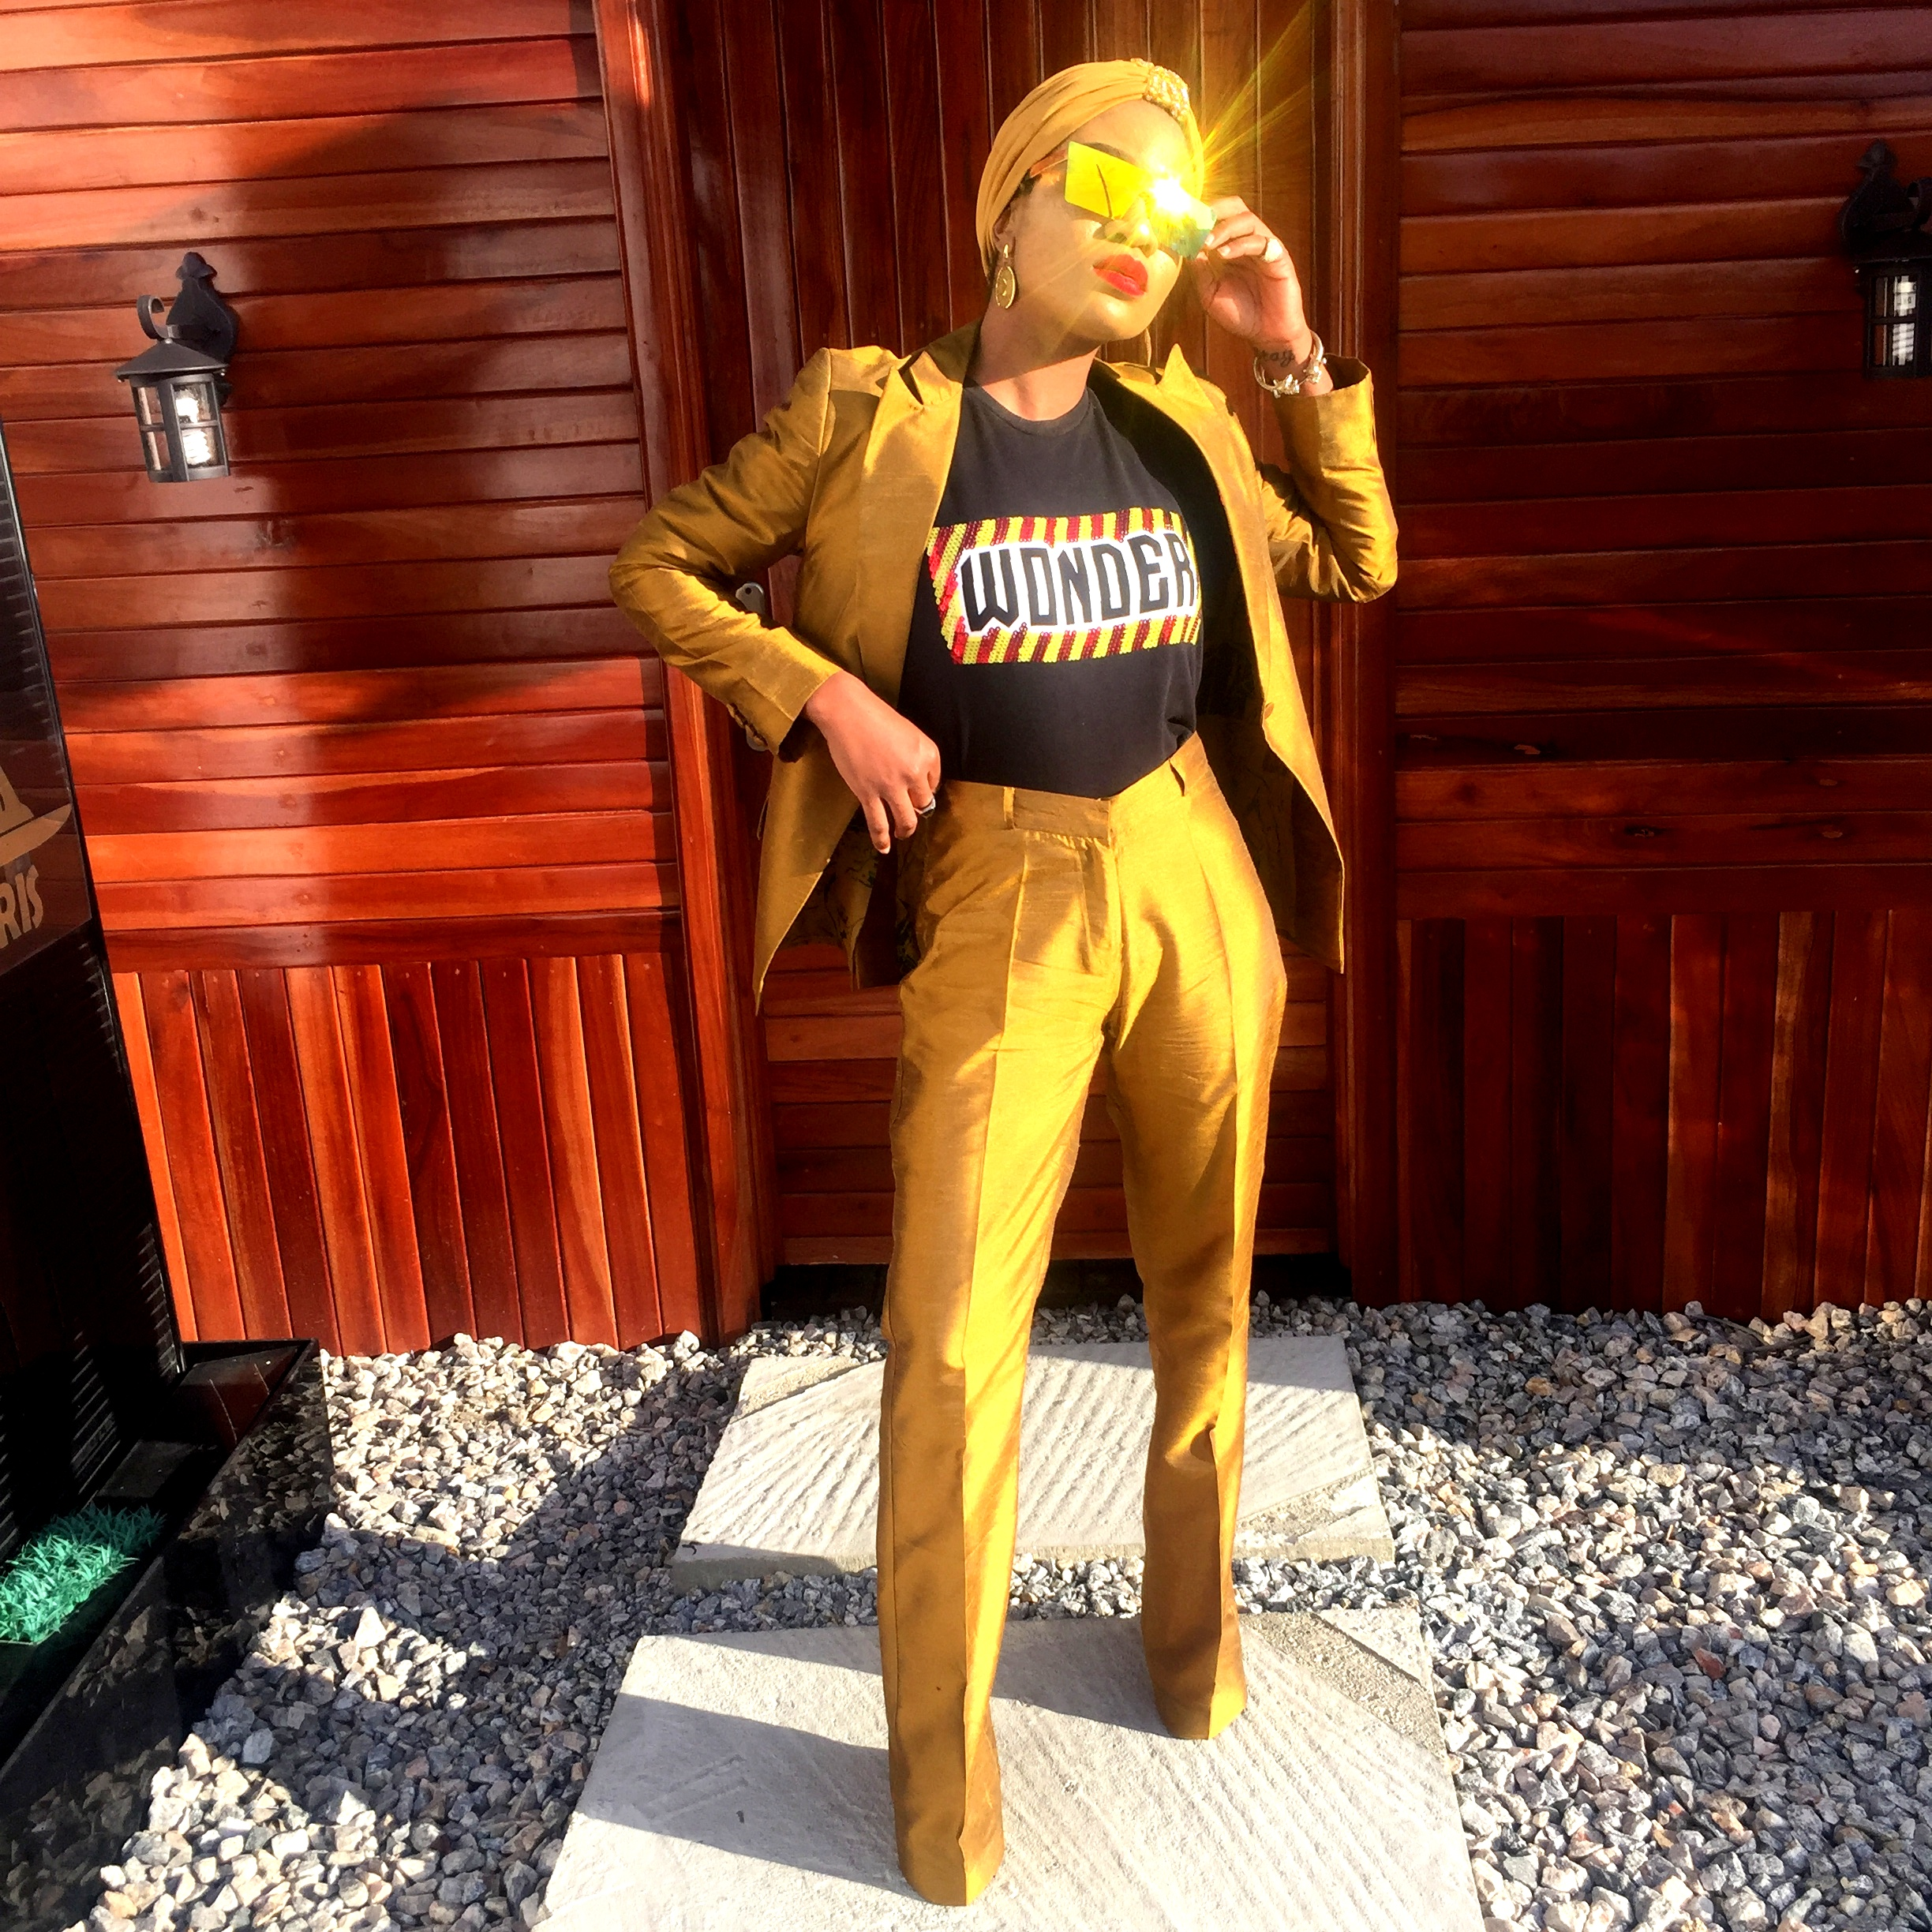 Nigerian fashionista jennifer oseh, theladyvhodka in a gold two piece metallic suit and mirror sunshades